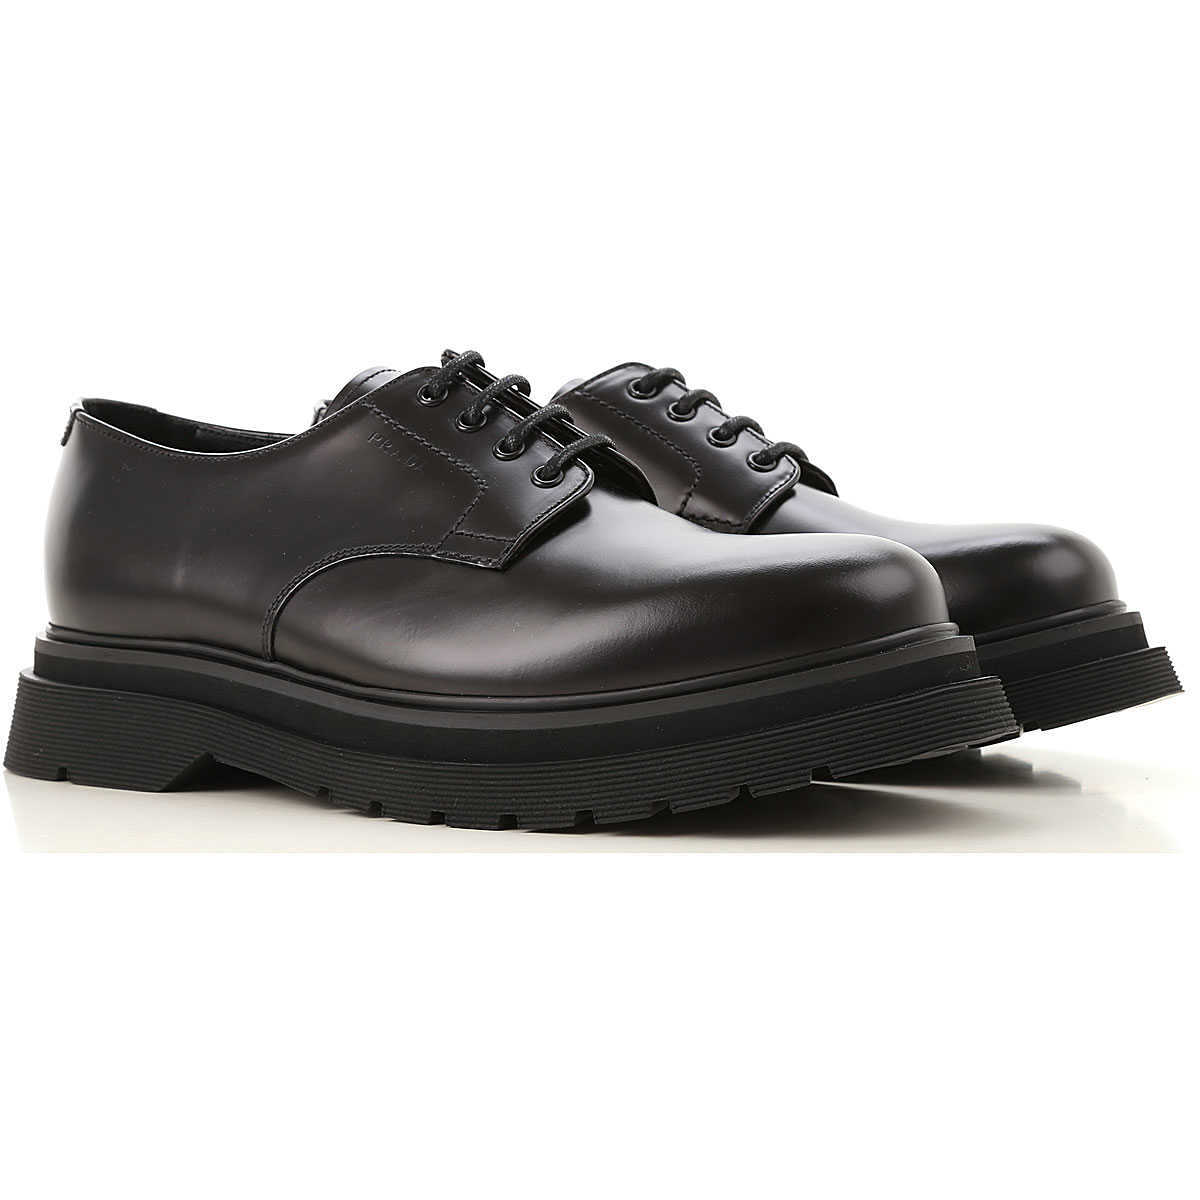 Prada Lace Up Shoes for Men Oxfords 10 6 7 7.5 8 8.5 9 Derbies and Brogues UK - GOOFASH